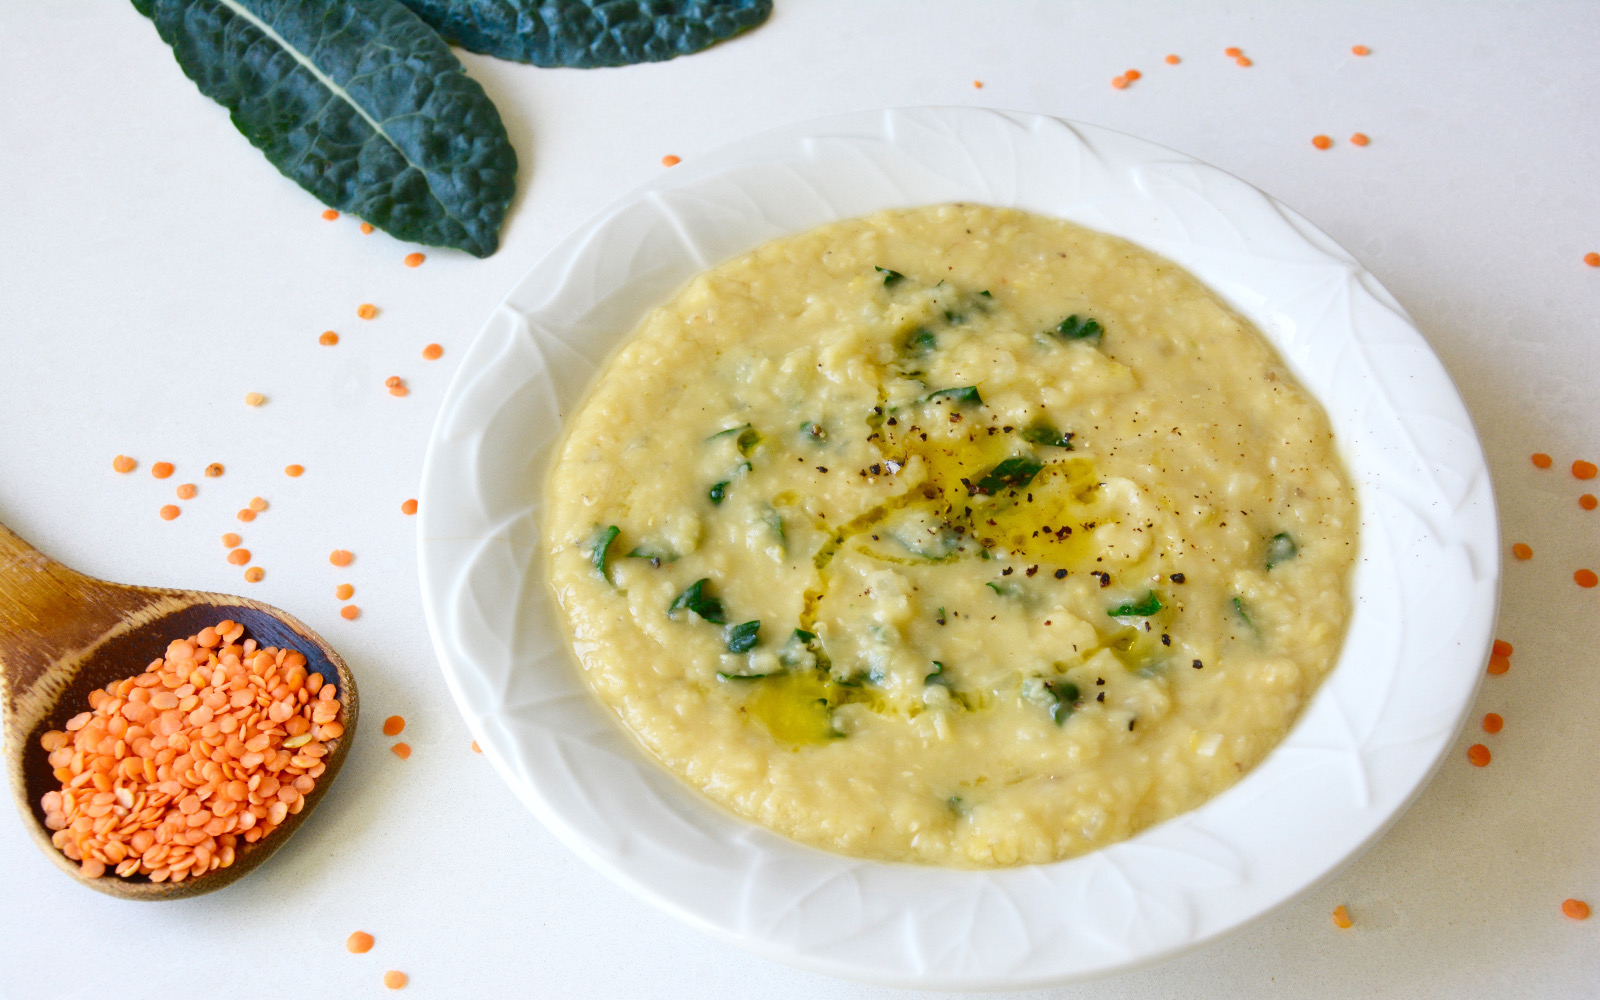 peppery red lentil soup with kale and lemon